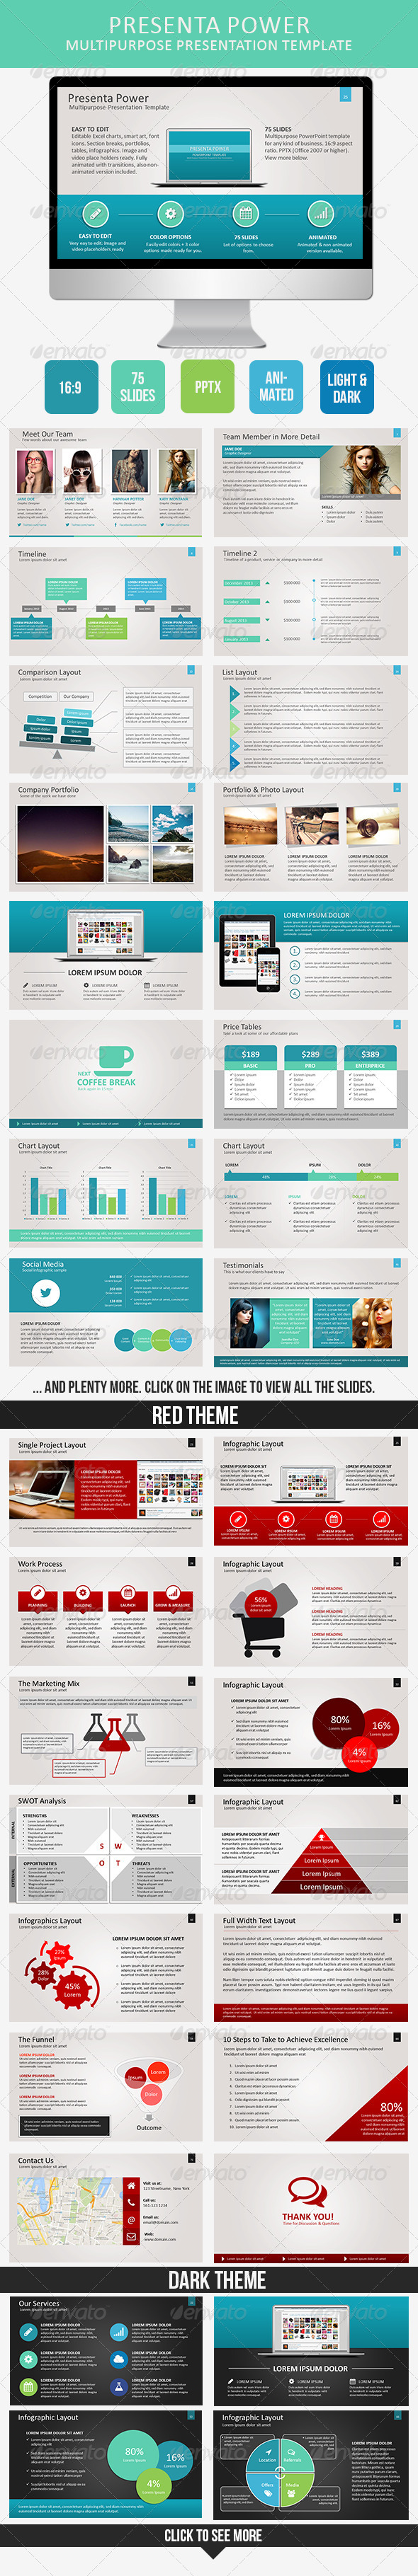 GraphicRiver Presenta Power PowerPoint Template 7764416